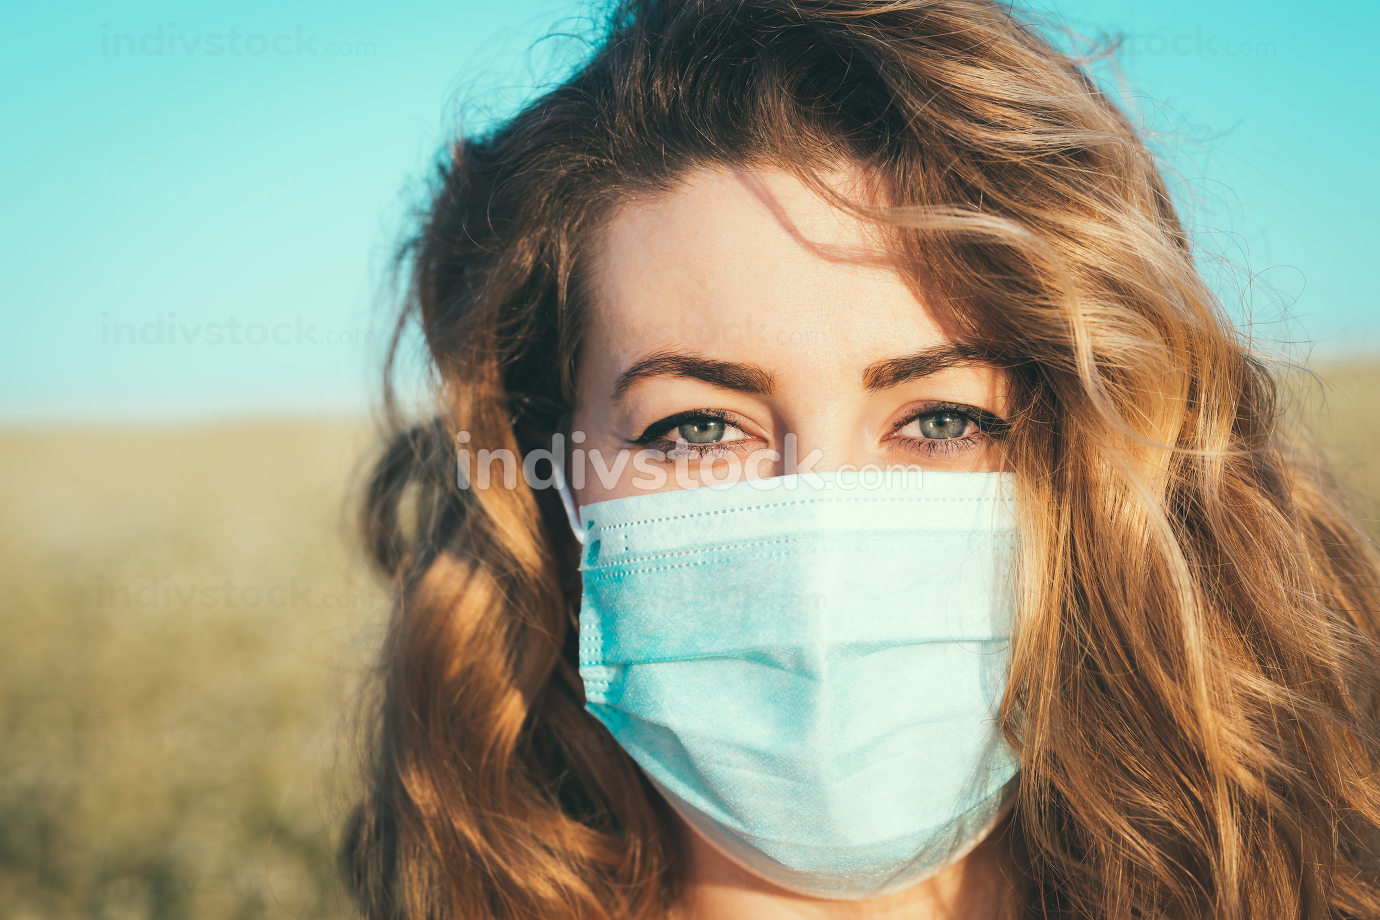 close-up portrait of a woman in a medical mask